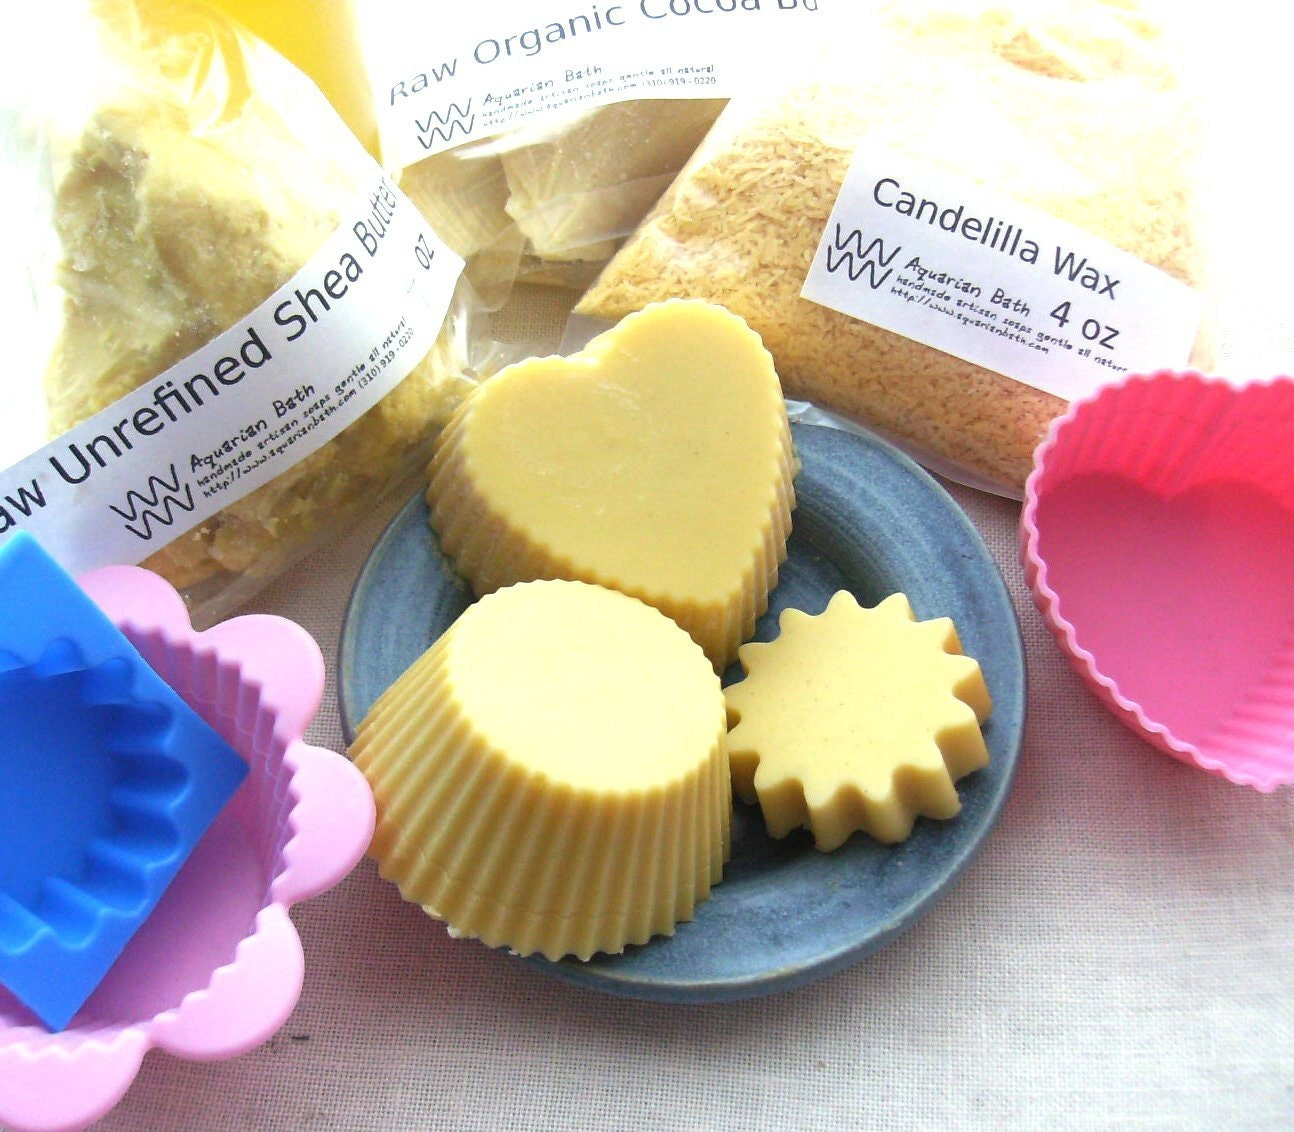 Lotion Bar Kit - Makes 12 Shea & Cocoa Butter Lotion Bars, Includes 3 Recipes - Kit - DIY Kit - Solid Lotion - Solid Lotion Bar